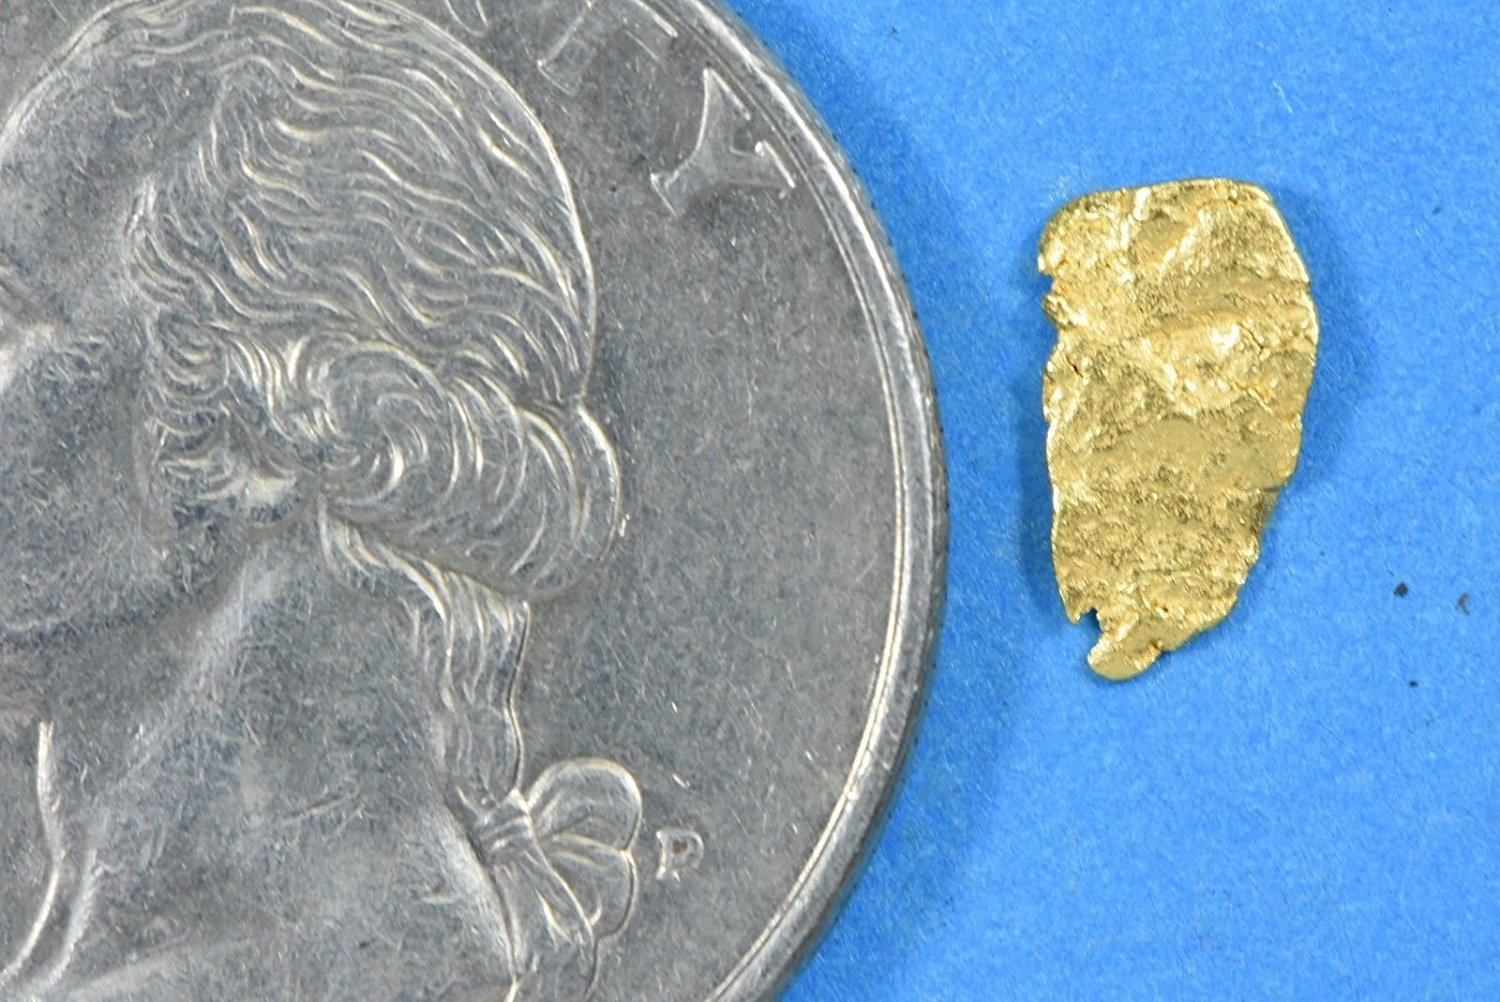 Alaskan-Yukon Bc Gold Rush Natural Nugget 0.15 Grams Genuine Alaska .10-.34